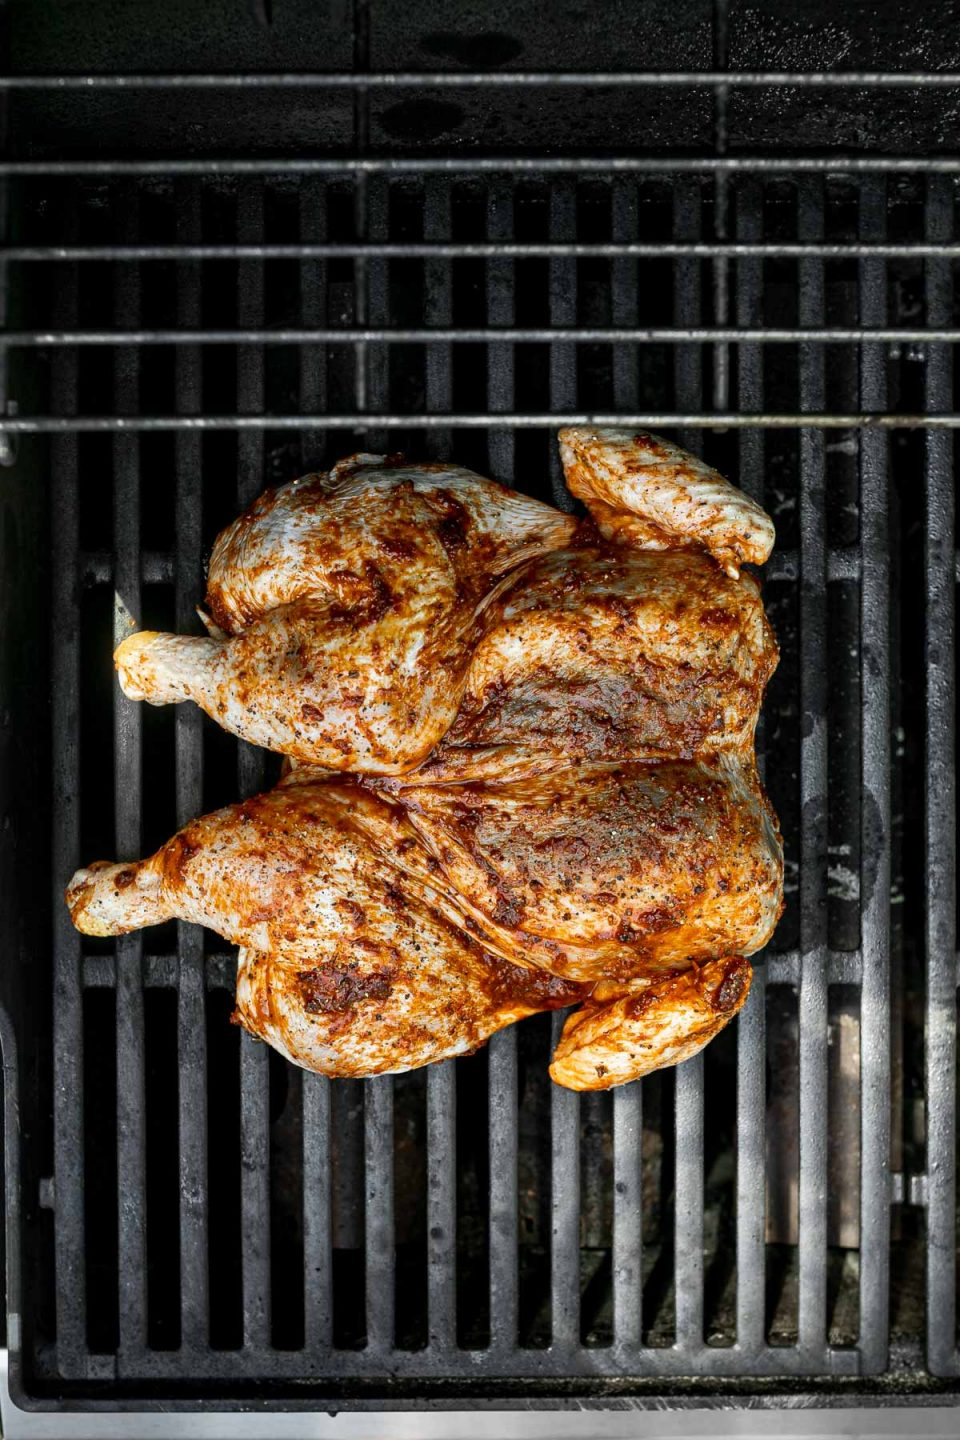 Spatchcocked/butterflied chicken on grill grates.